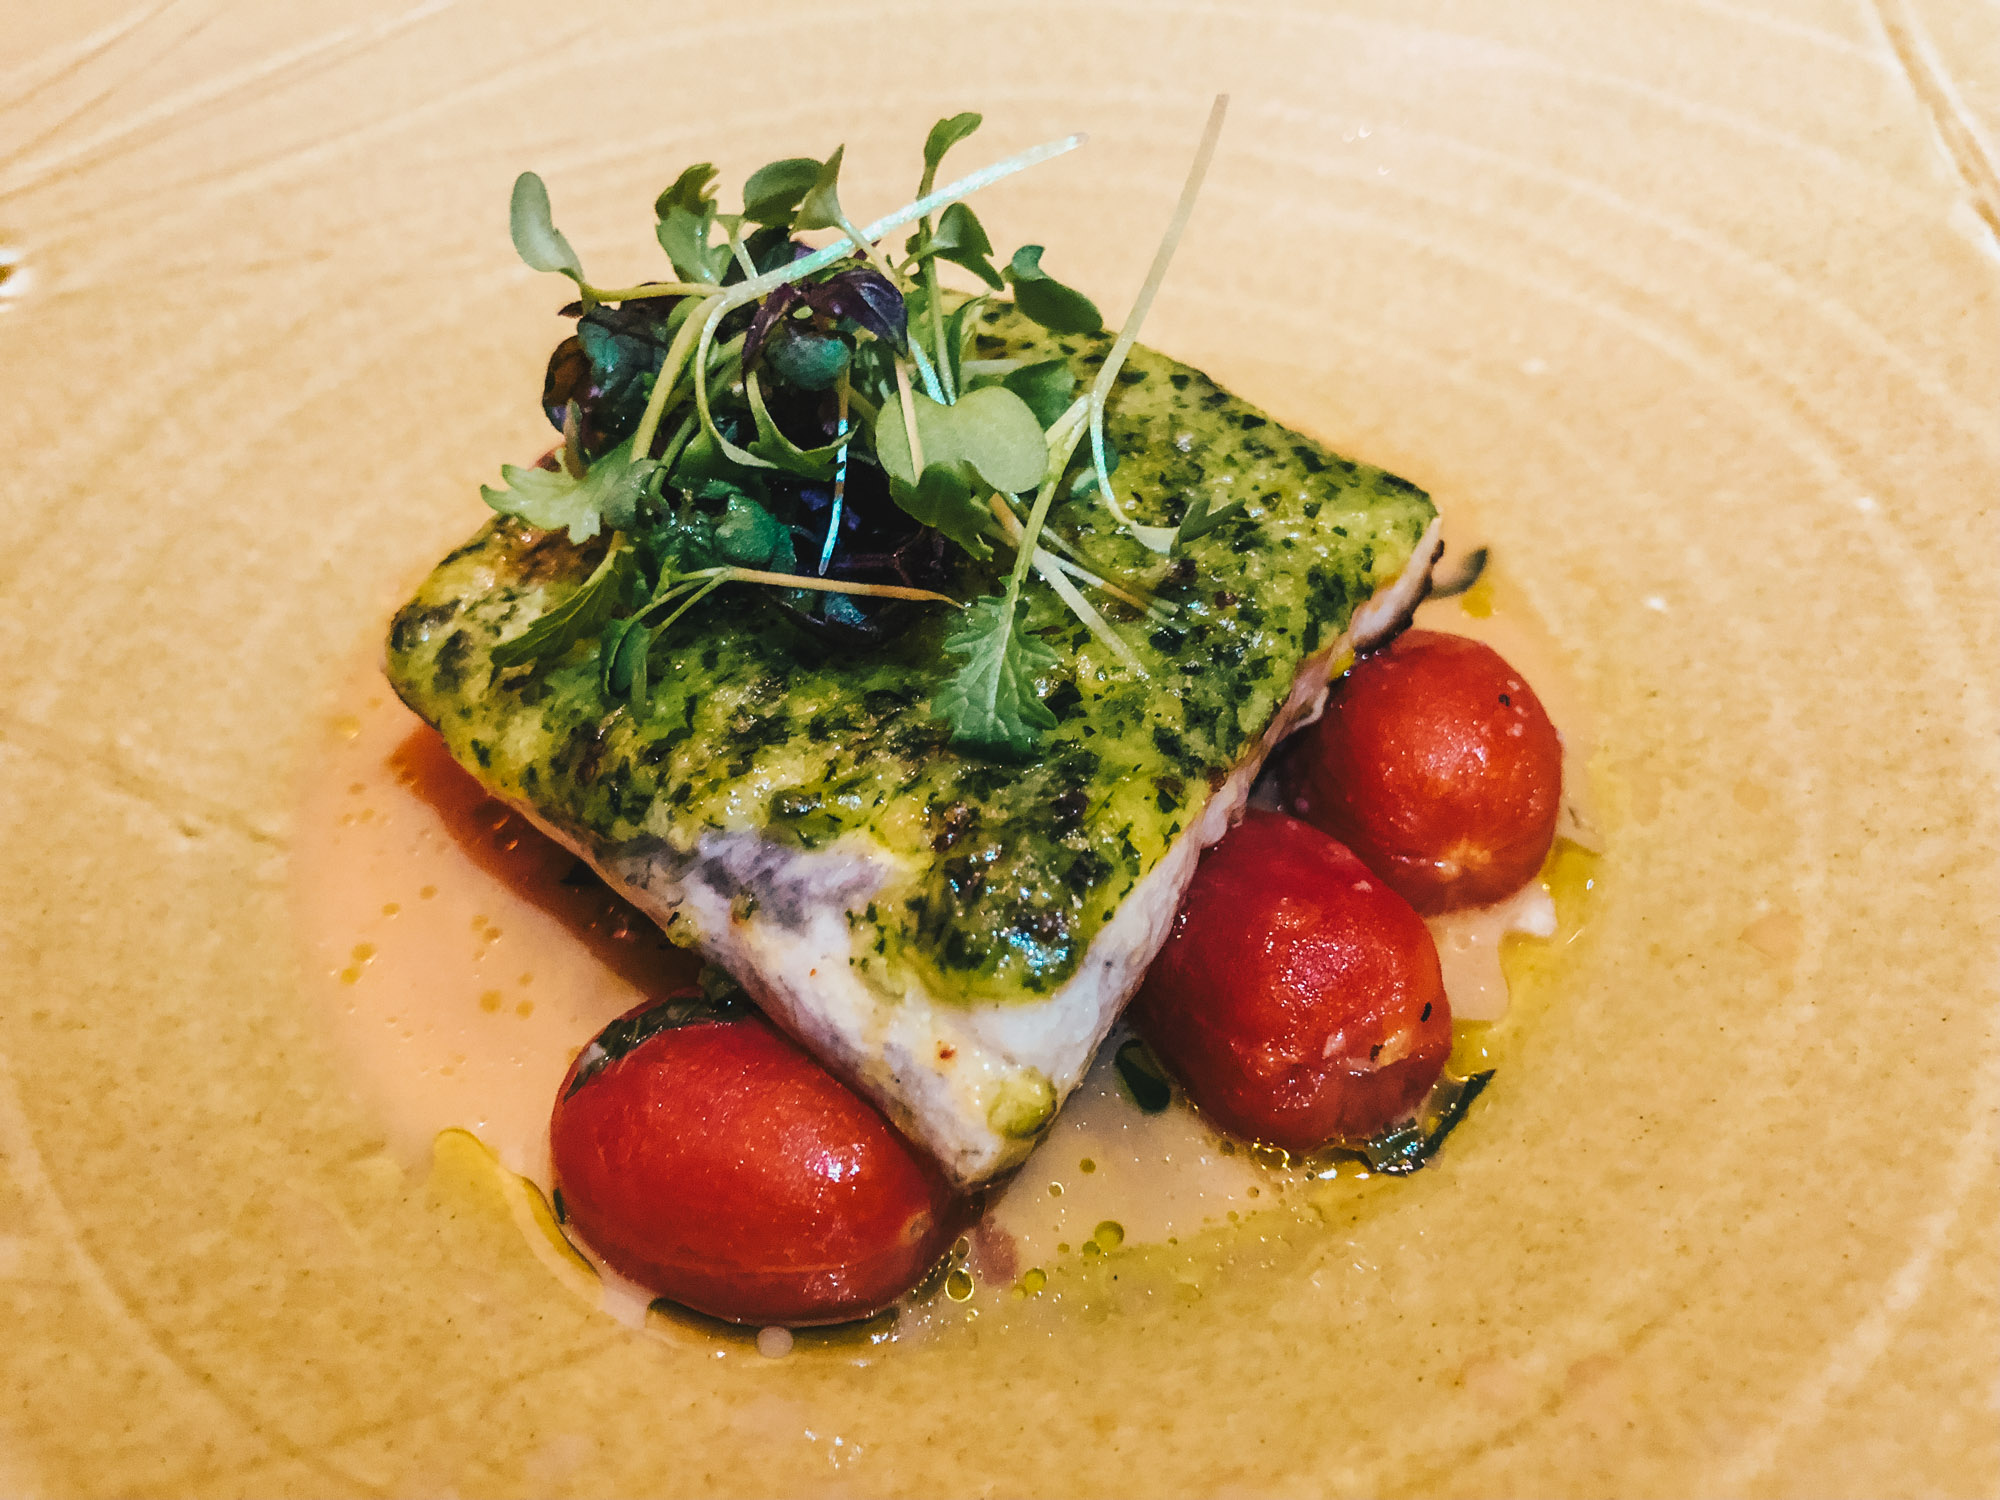 Grissini's Refreshed Dining Experience at the Grand Copthorne Waterfront Hotel